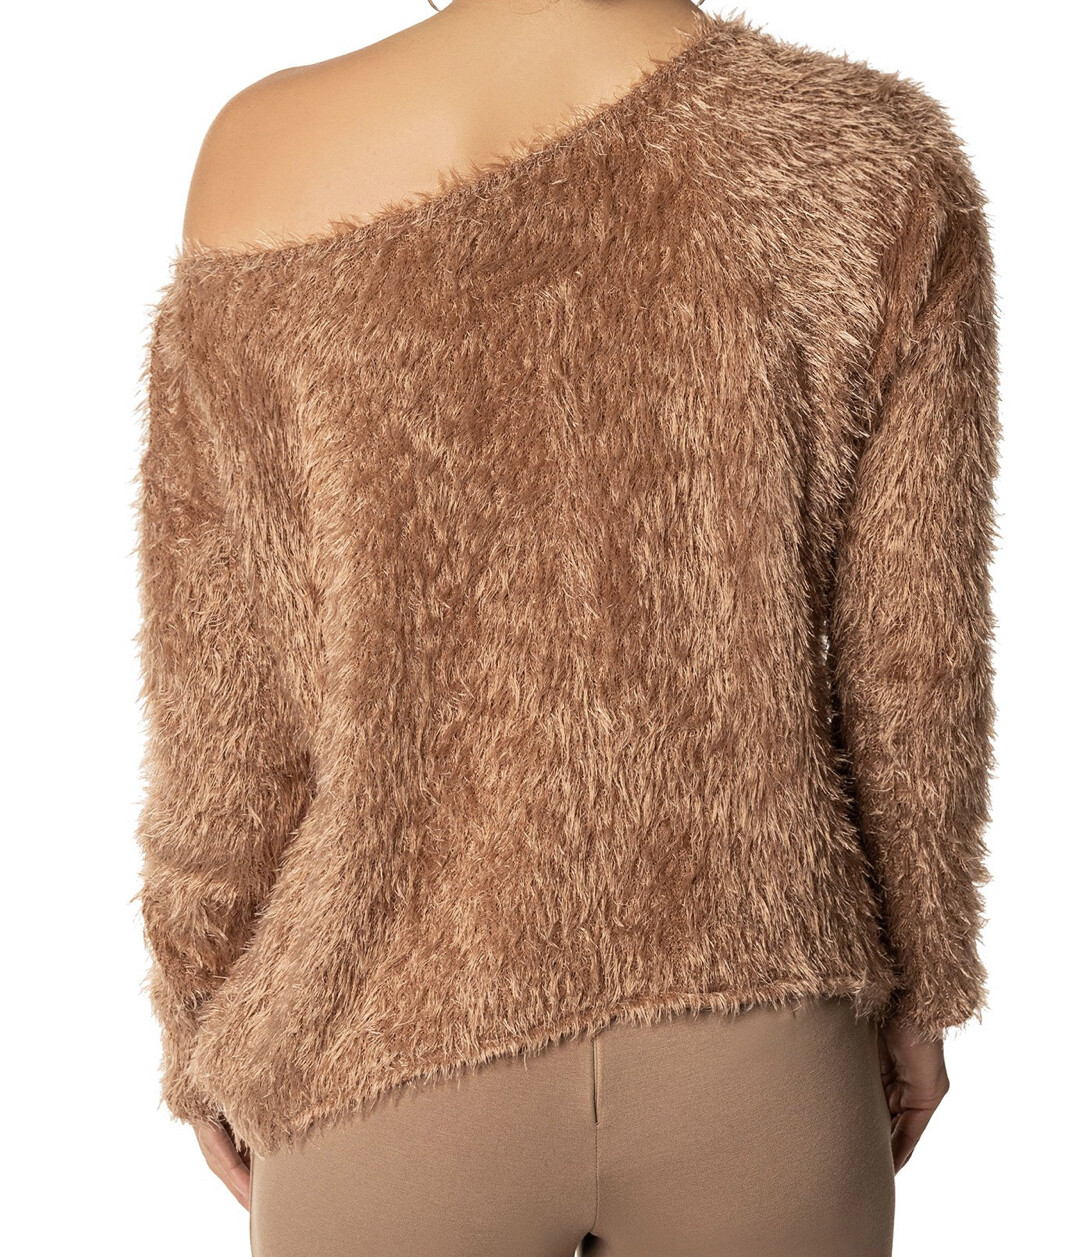 FKSP Taupe Cold Shoulder Style Furry Crop Sweater Small